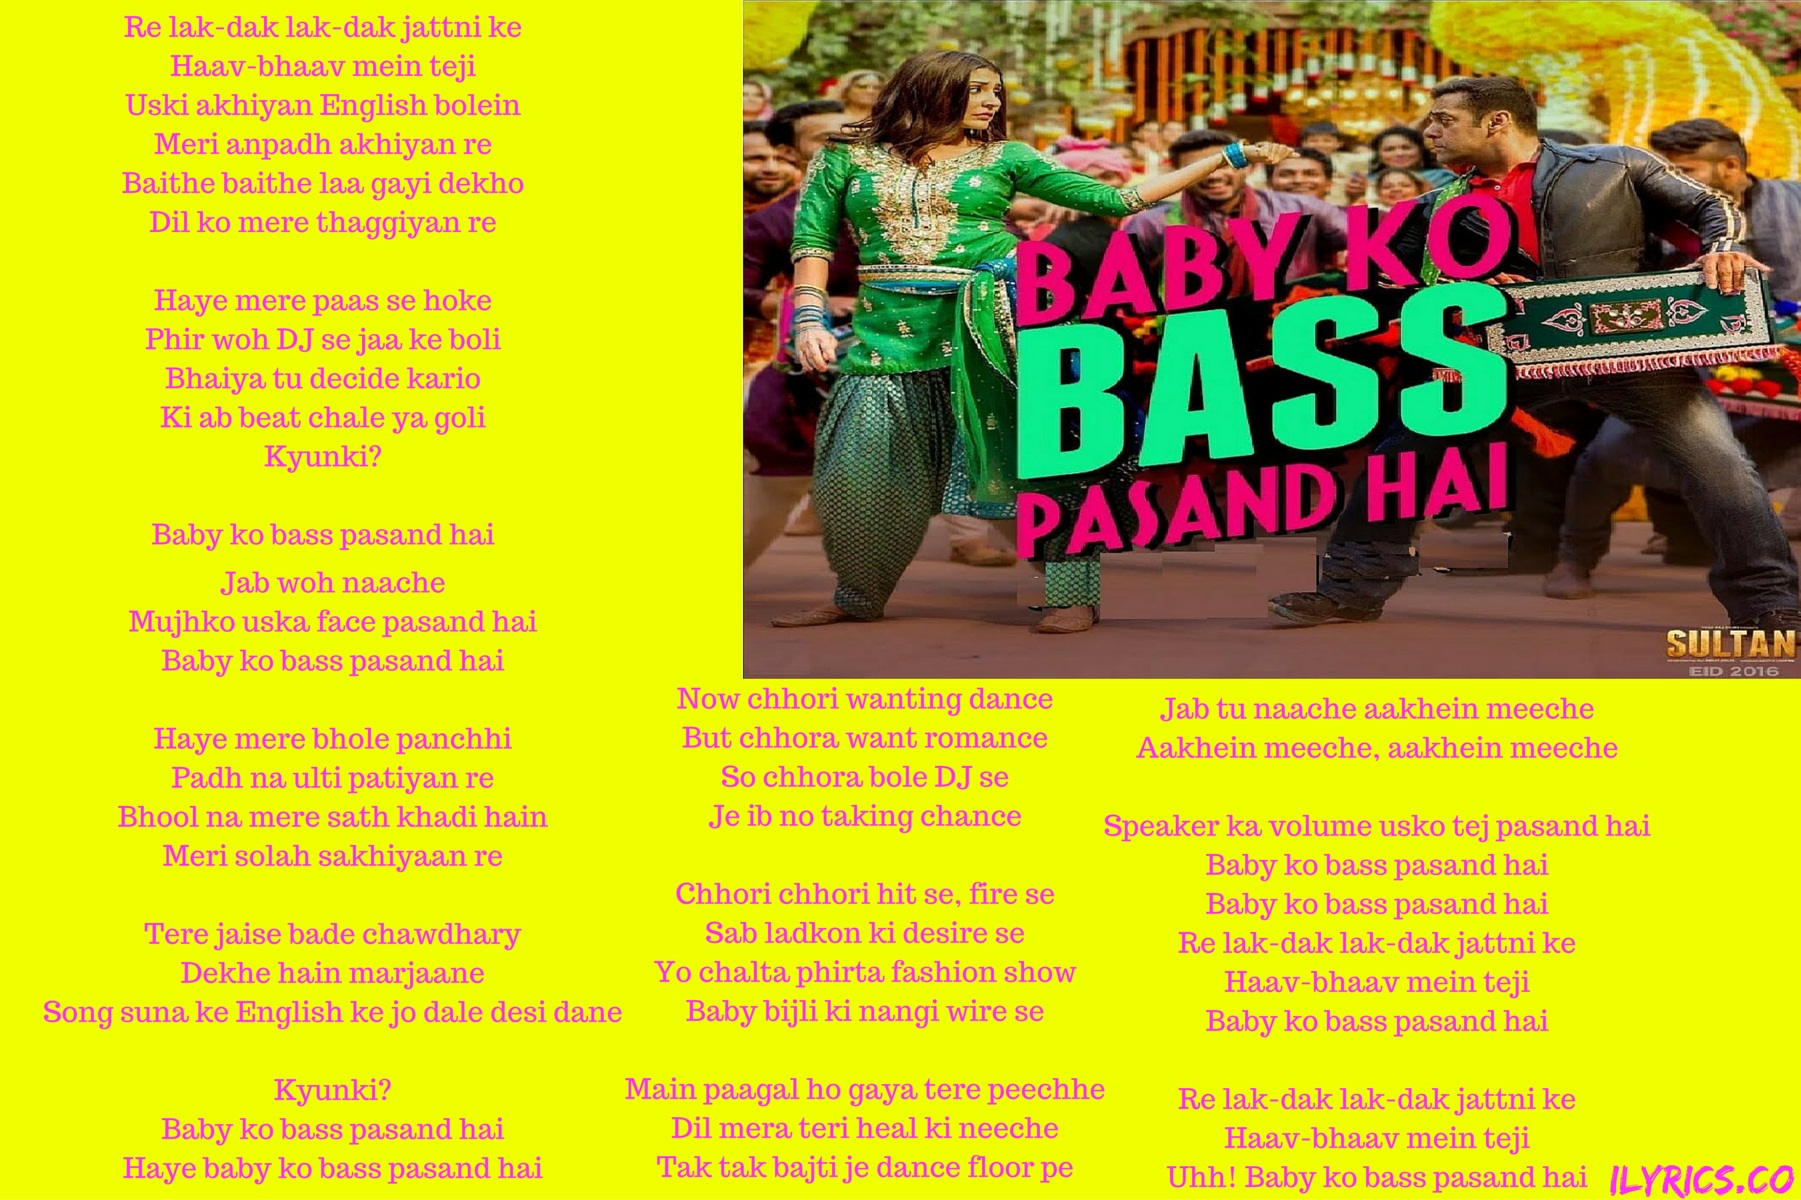 Baby Ko Bass Pasand Hai lyrics